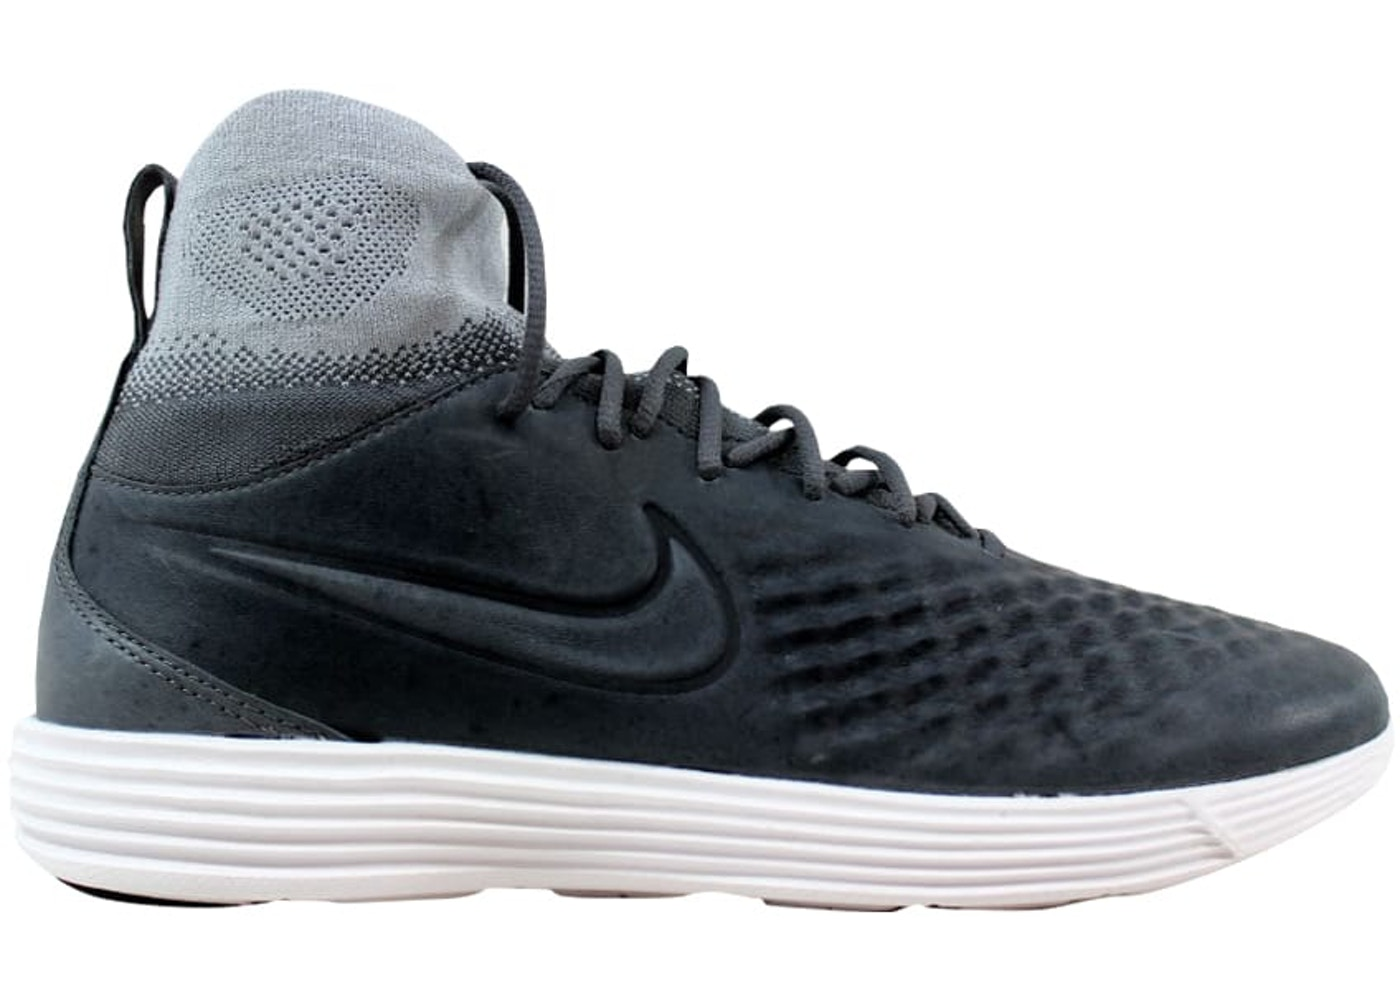 94d1f0b2 Nike Other Other Shoes - Price Premium